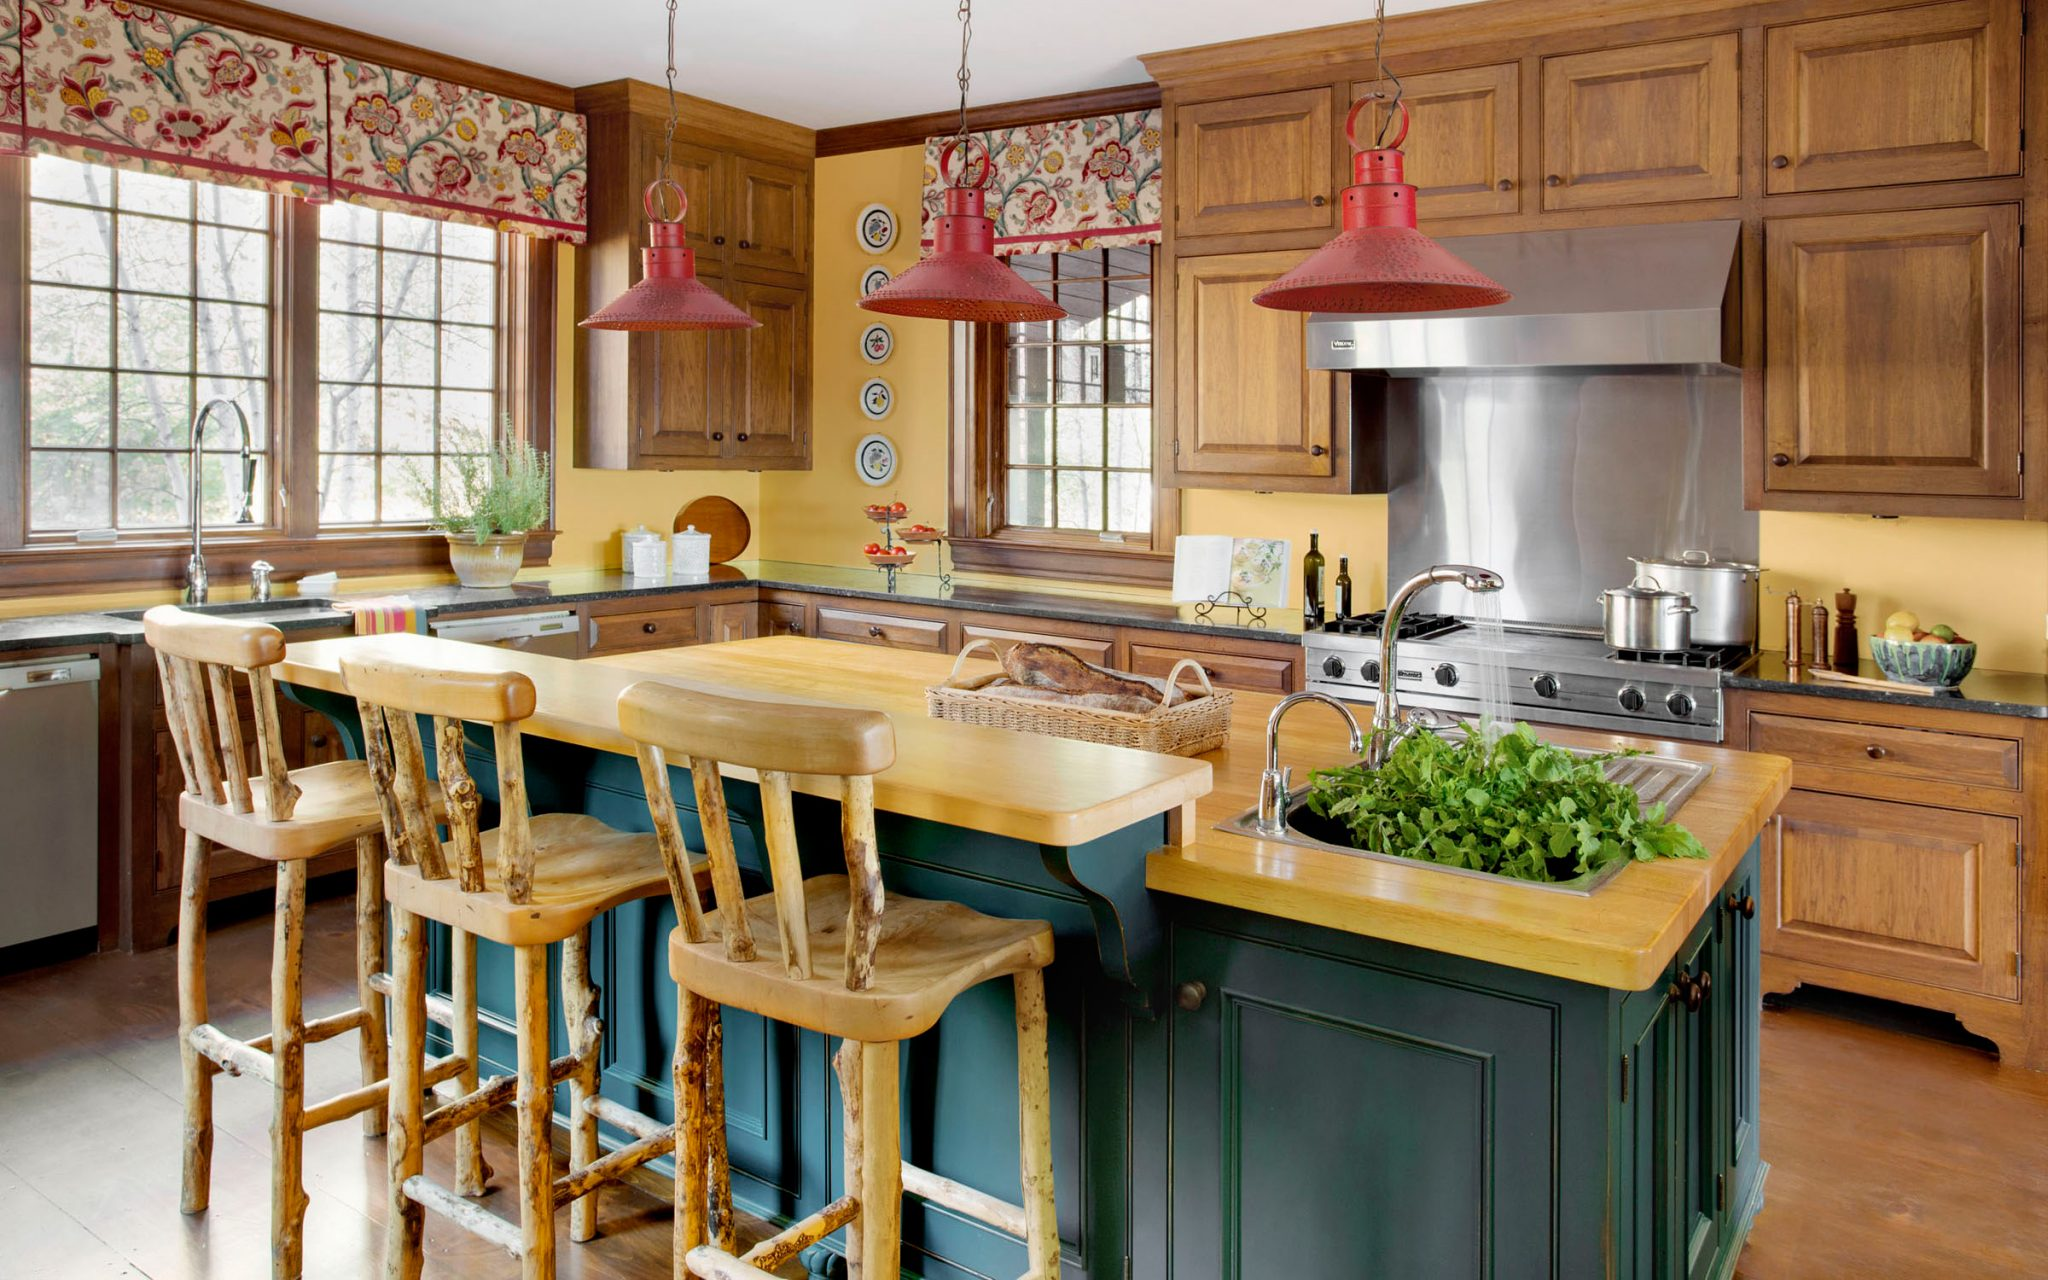 Colorful Kitchen Design Ideas 6 from Boston interior designer Elizabeth Swartz Interiors